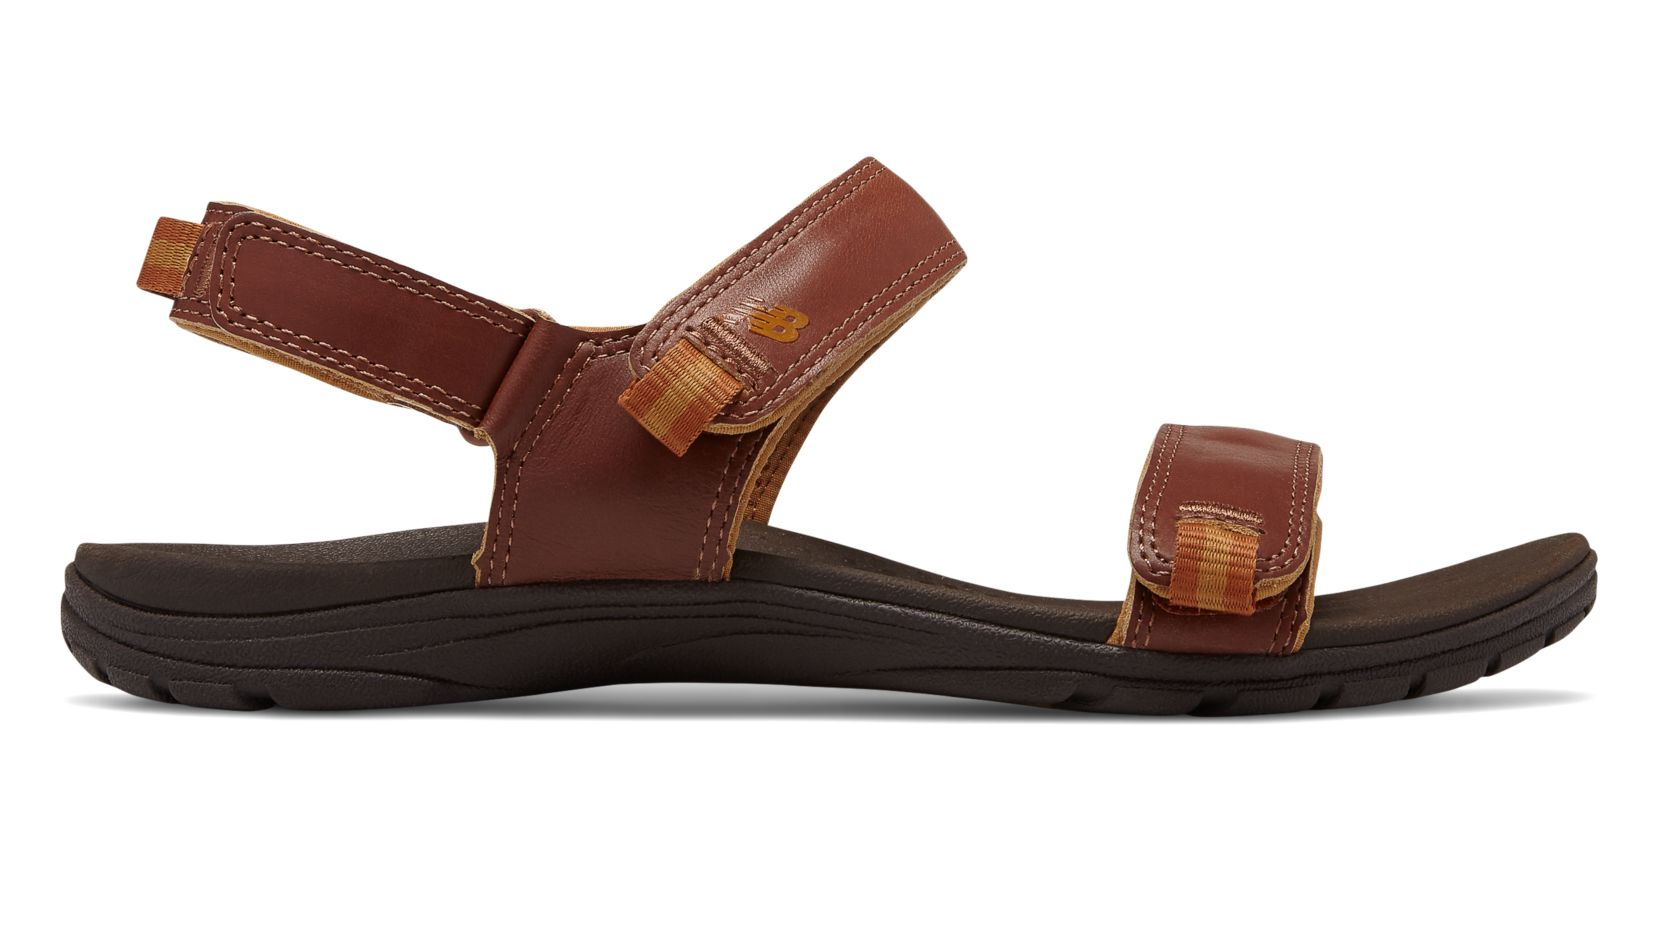 0ee9d8b63ab711 Women's Traverse Leather Sandal - Whisky (WR2102WSK) | Smith's Shoes